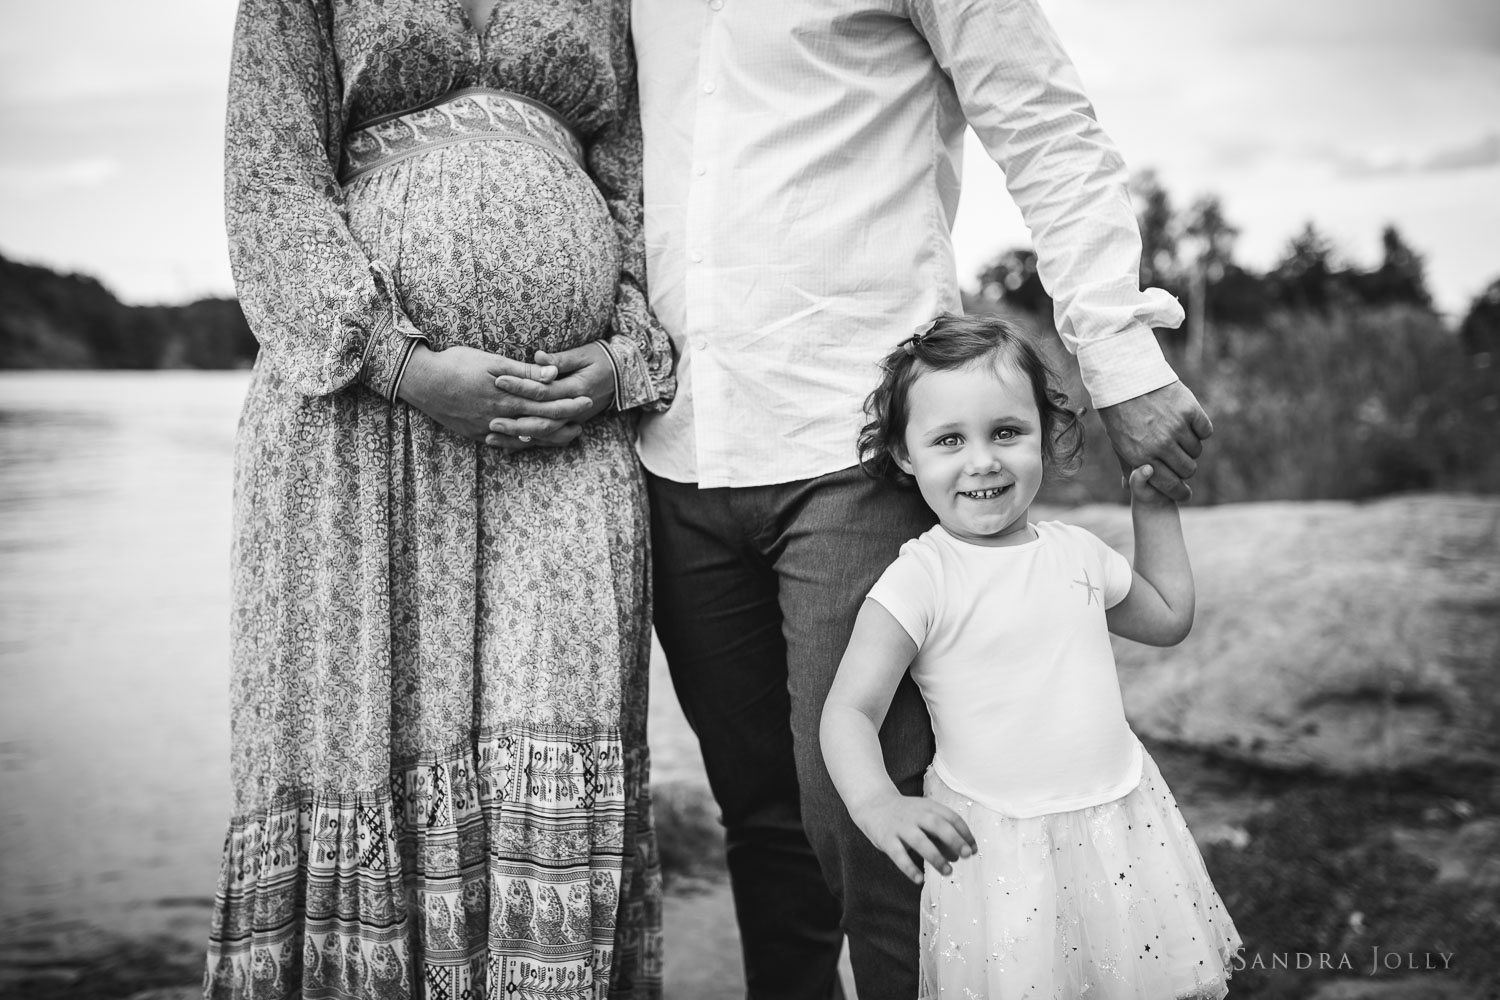 black-and-white-photo-of-parents-with-daughter-by-Stockholm-family-photographer-Sandra-Jolly.jpg